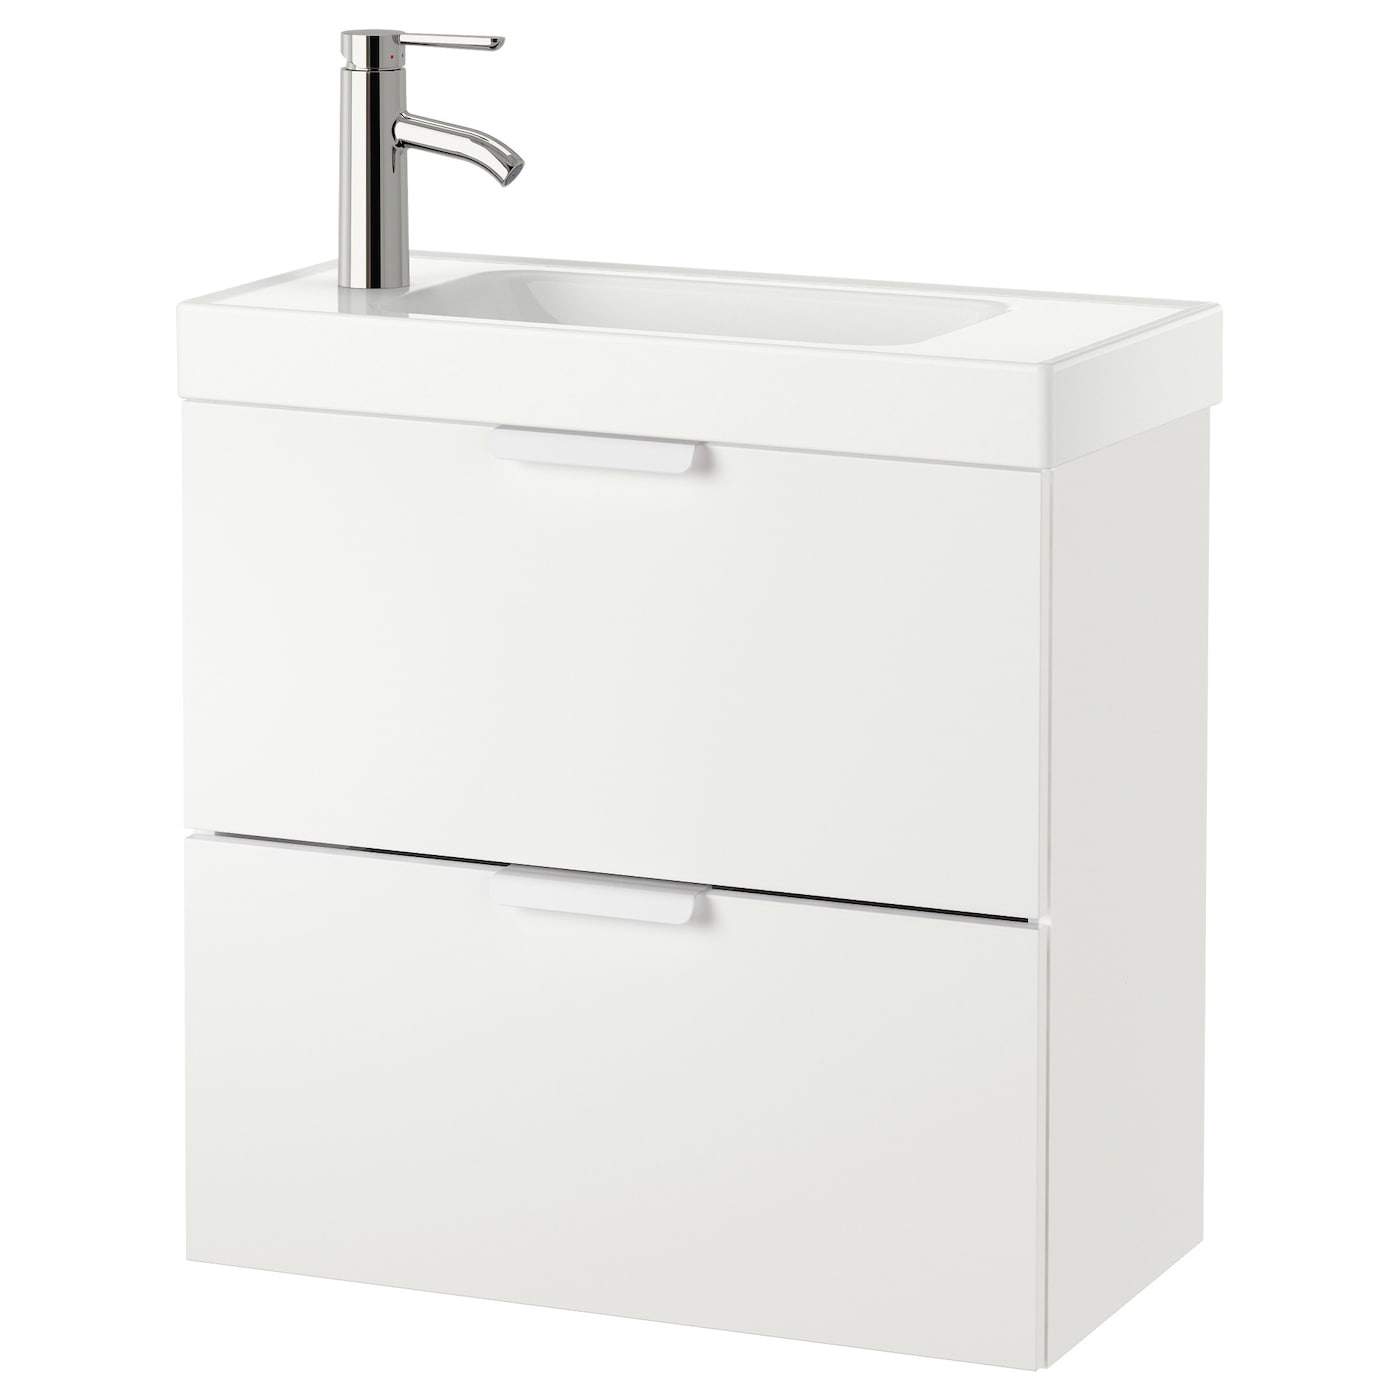 godmorgon hagaviken wash stand with 2 drawers white. Black Bedroom Furniture Sets. Home Design Ideas